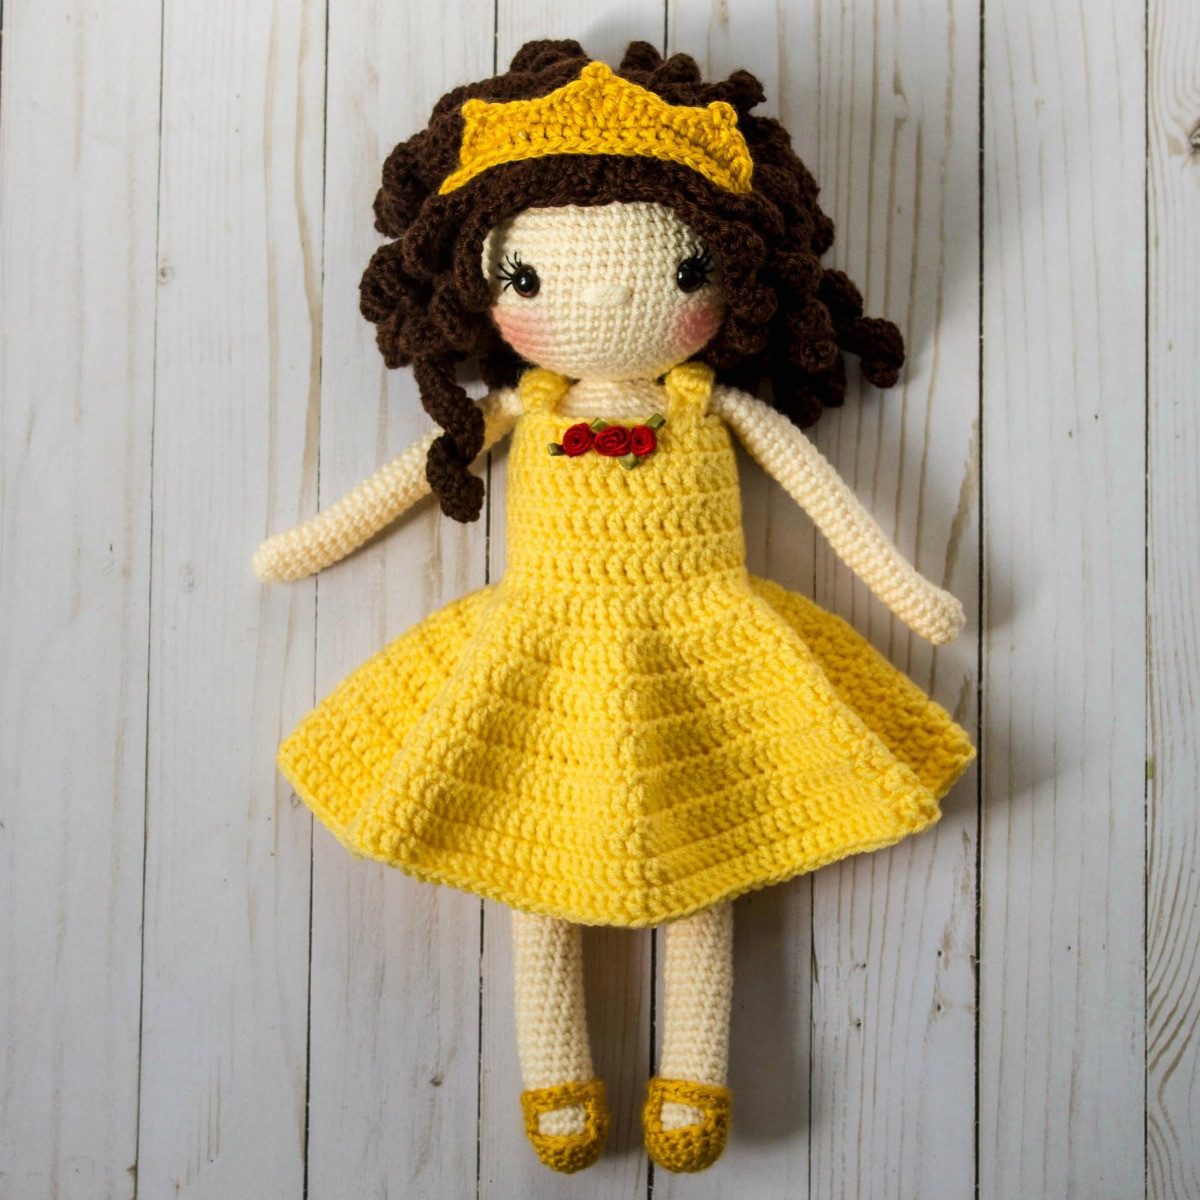 Doll Patterns Beautiful Free Crochet Doll Pattern the Friendly sophie Of Doll Patterns Luxury Dolls Patterns Free Free Patterns